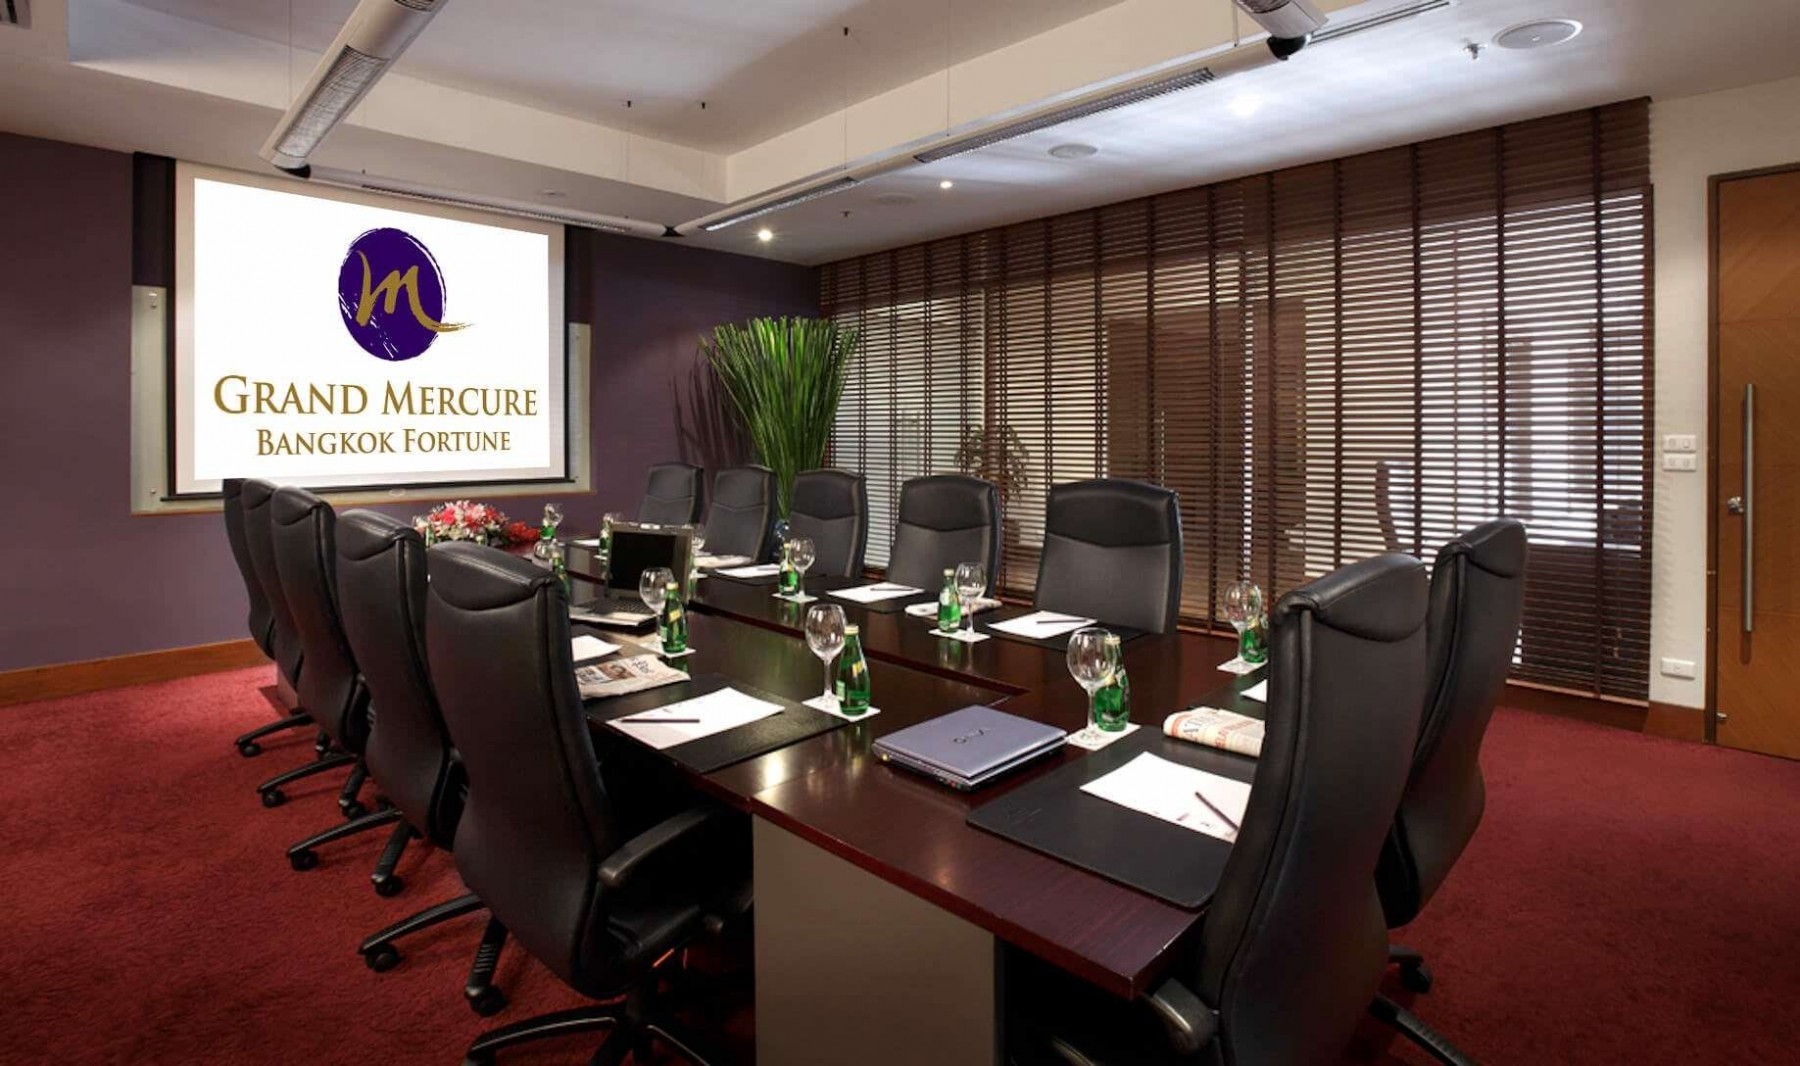 Grand Mercure Bangkok Fortune Conference Room